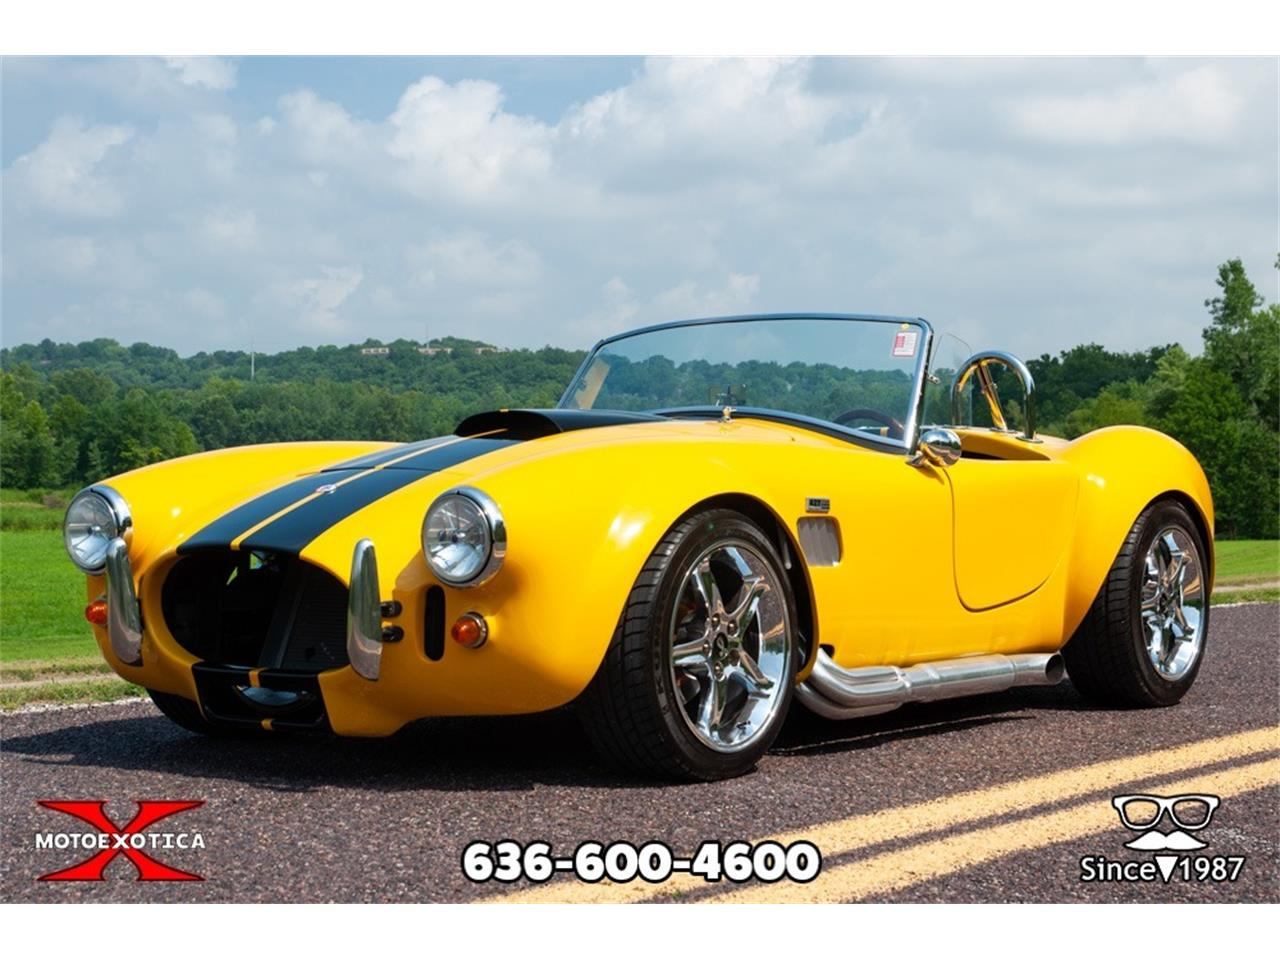 2003 Special Construction Cobra Replica for sale in St. Louis, MO – photo 4